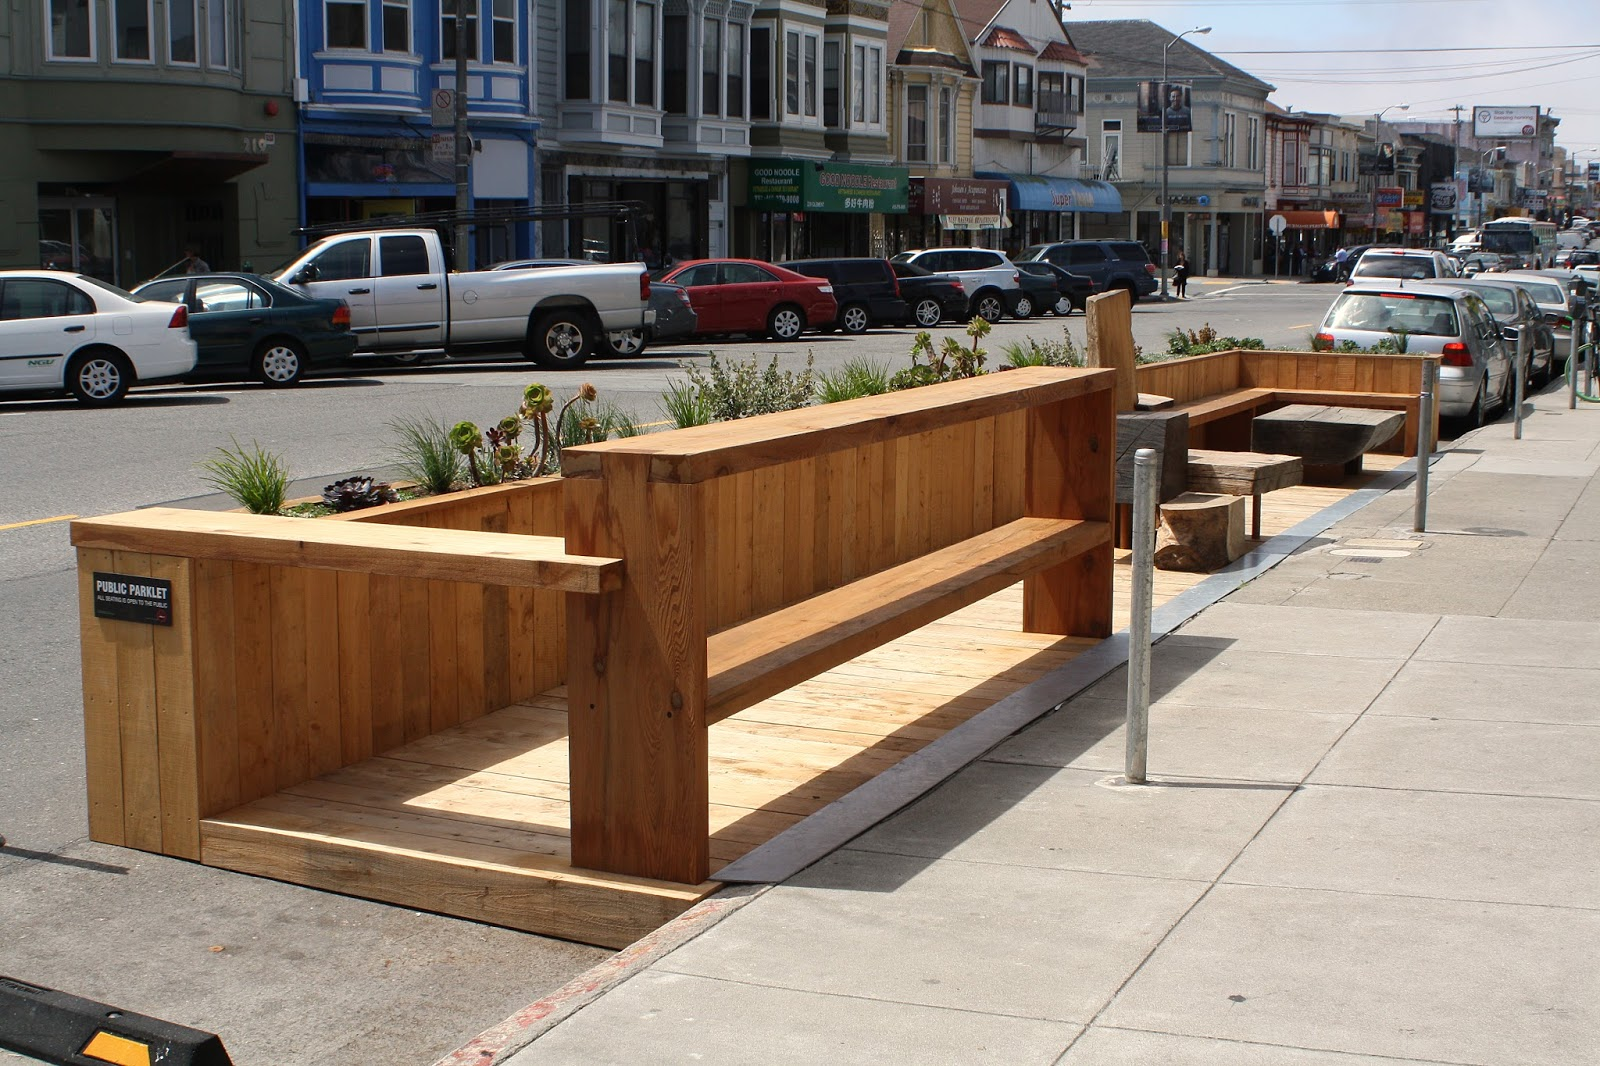 Example of a parklet in San Francisco